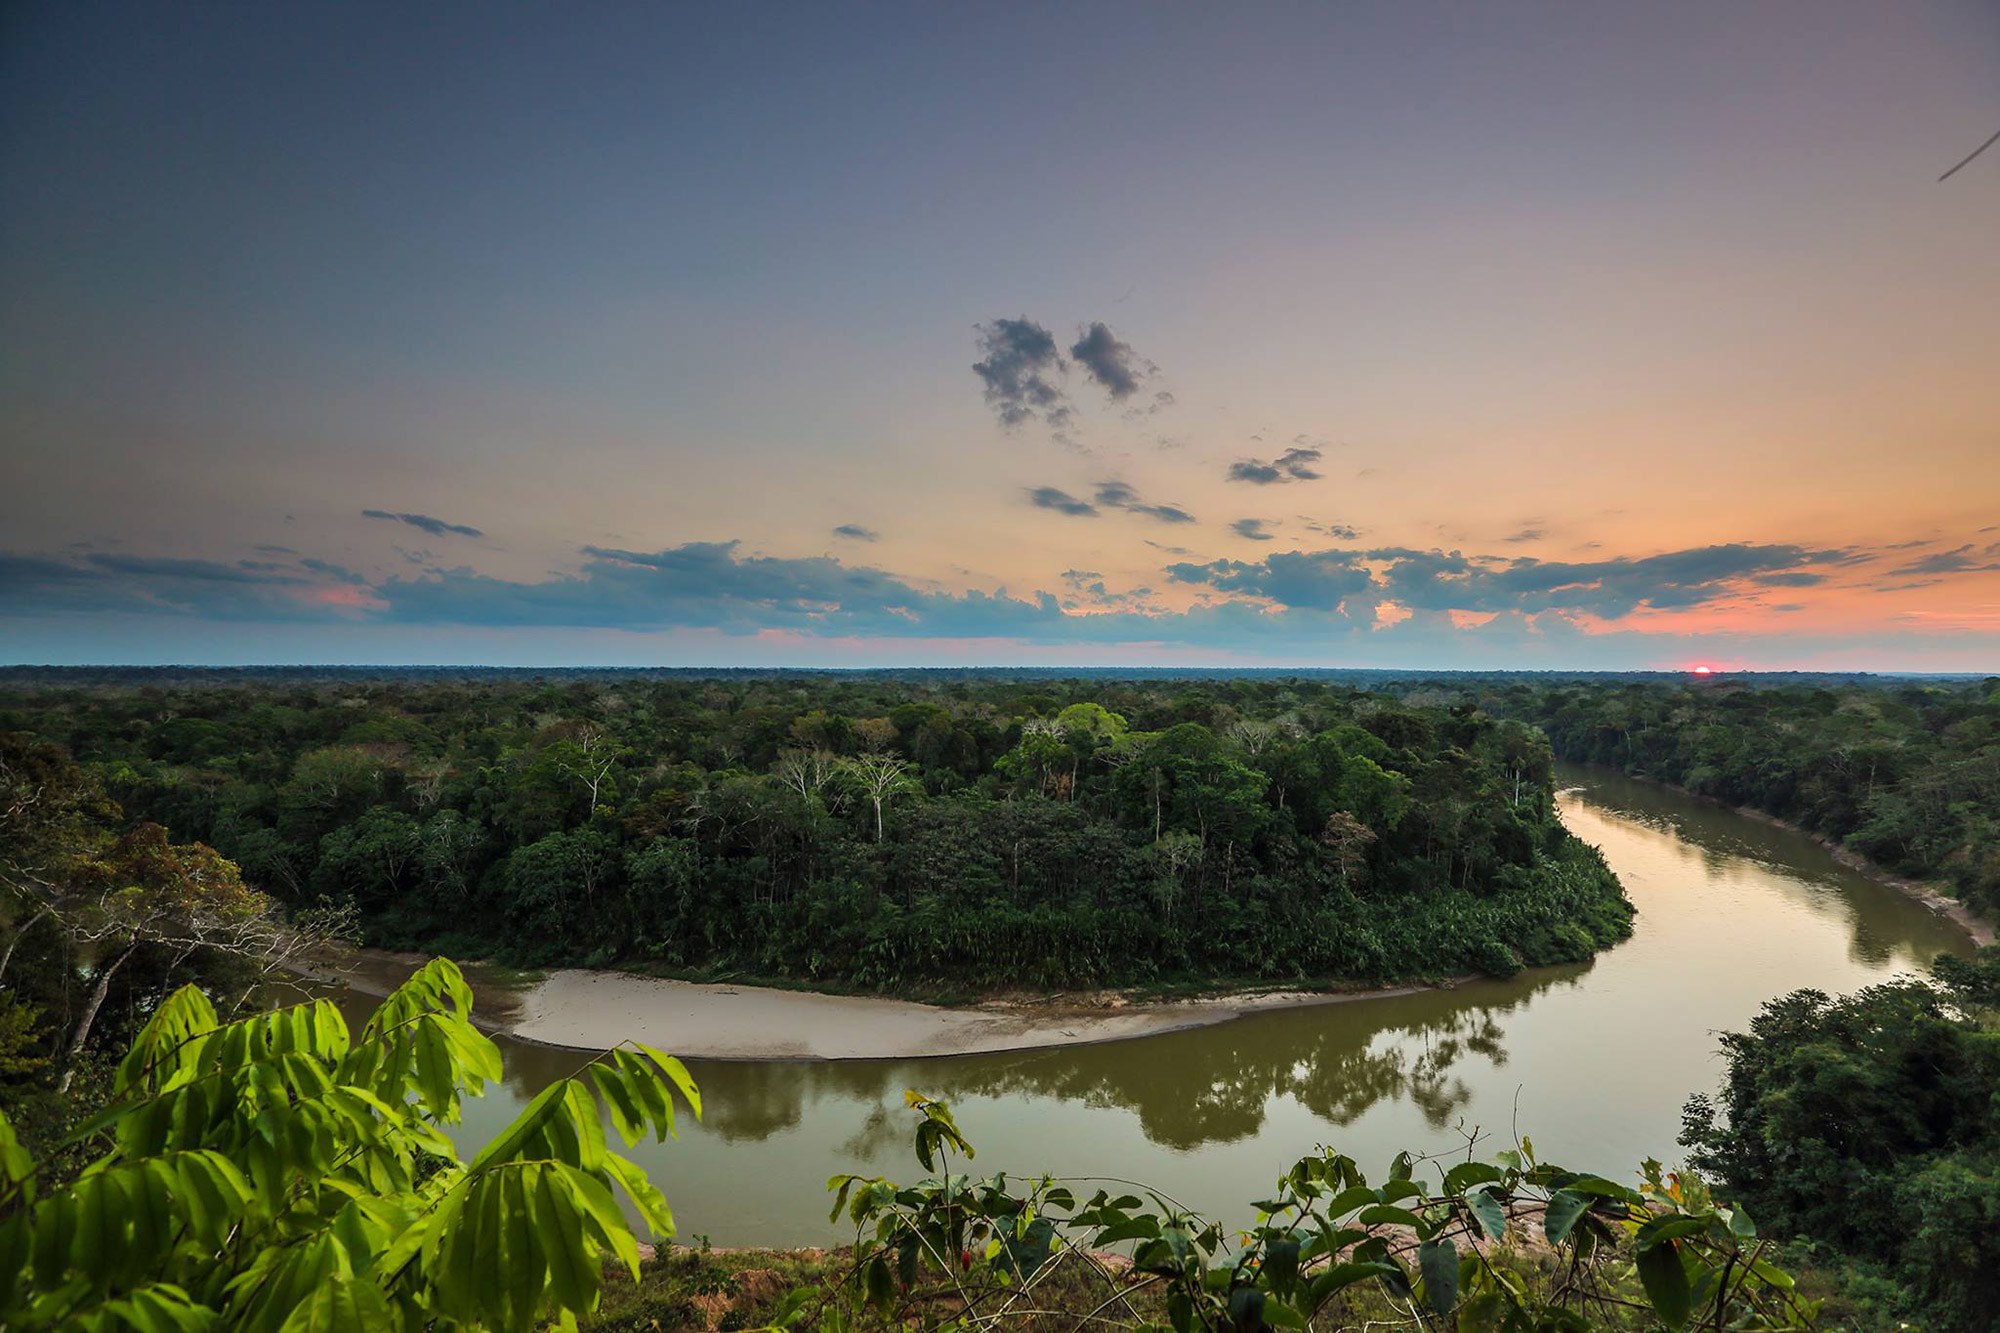 Amazon Research and Conservation Volunteer & Internship Project, Peru